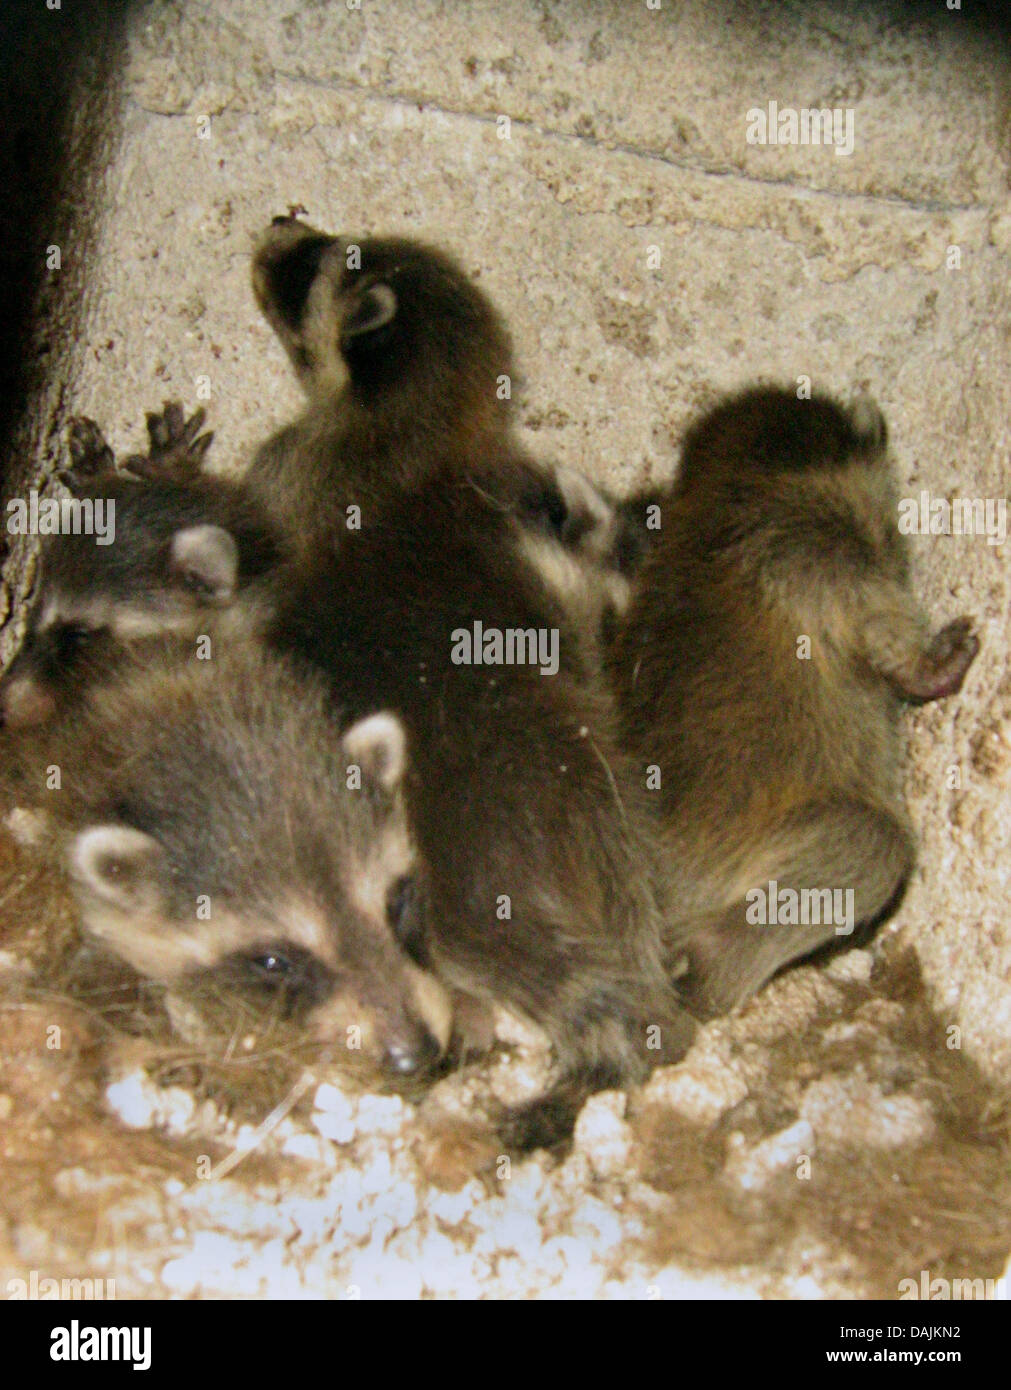 six baby racoons lie in a nest inside a chimney in Friedrichsdorf, Germany, 17 April 2011. The babies were abandoned - Stock Image